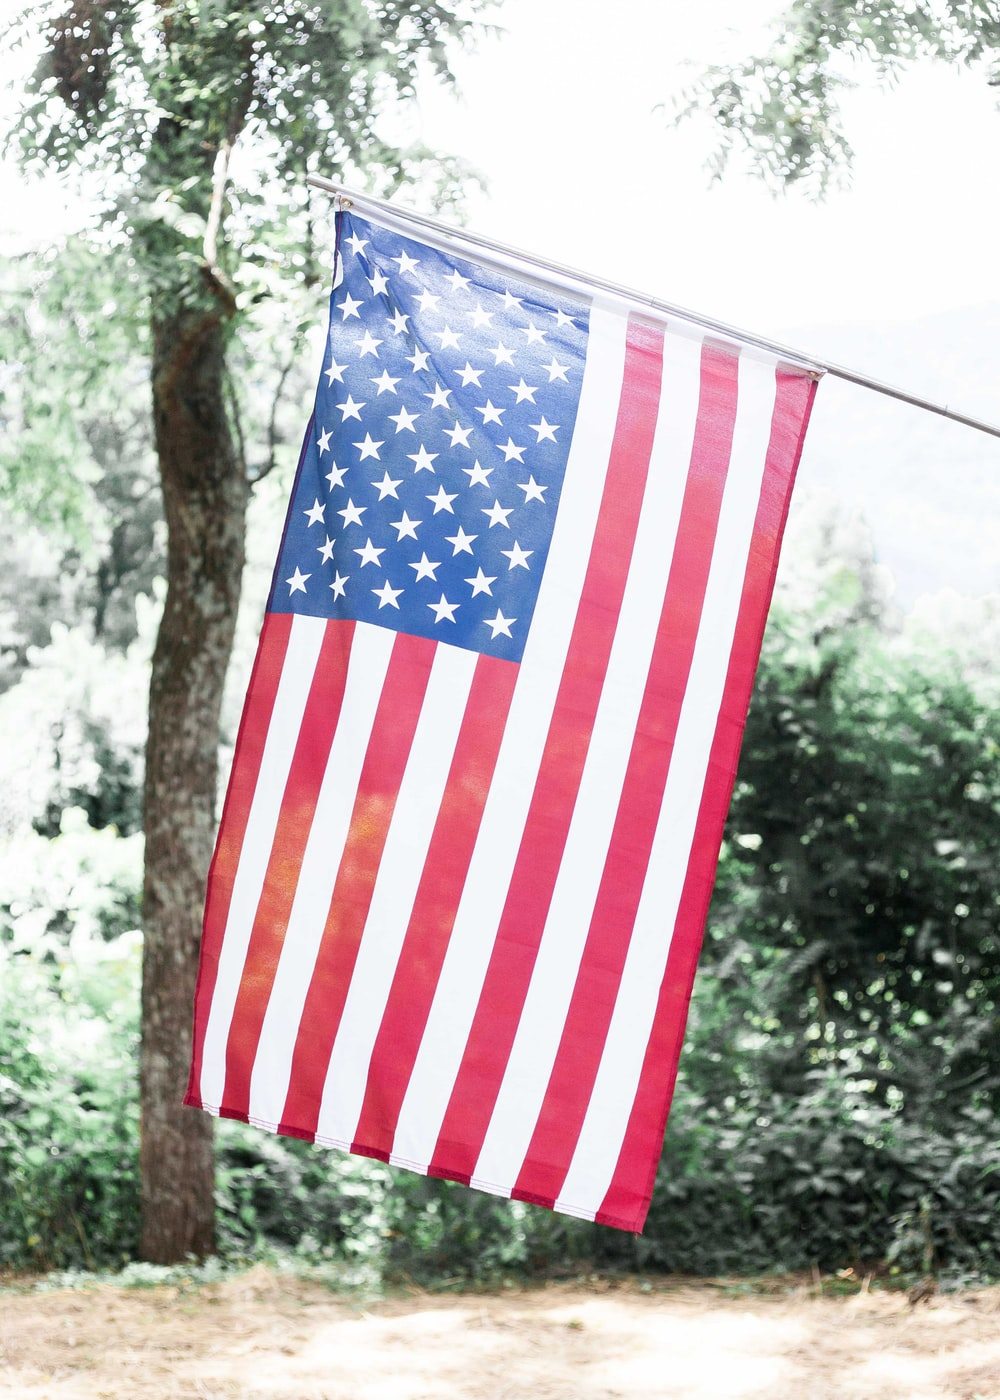 US flag with trees background